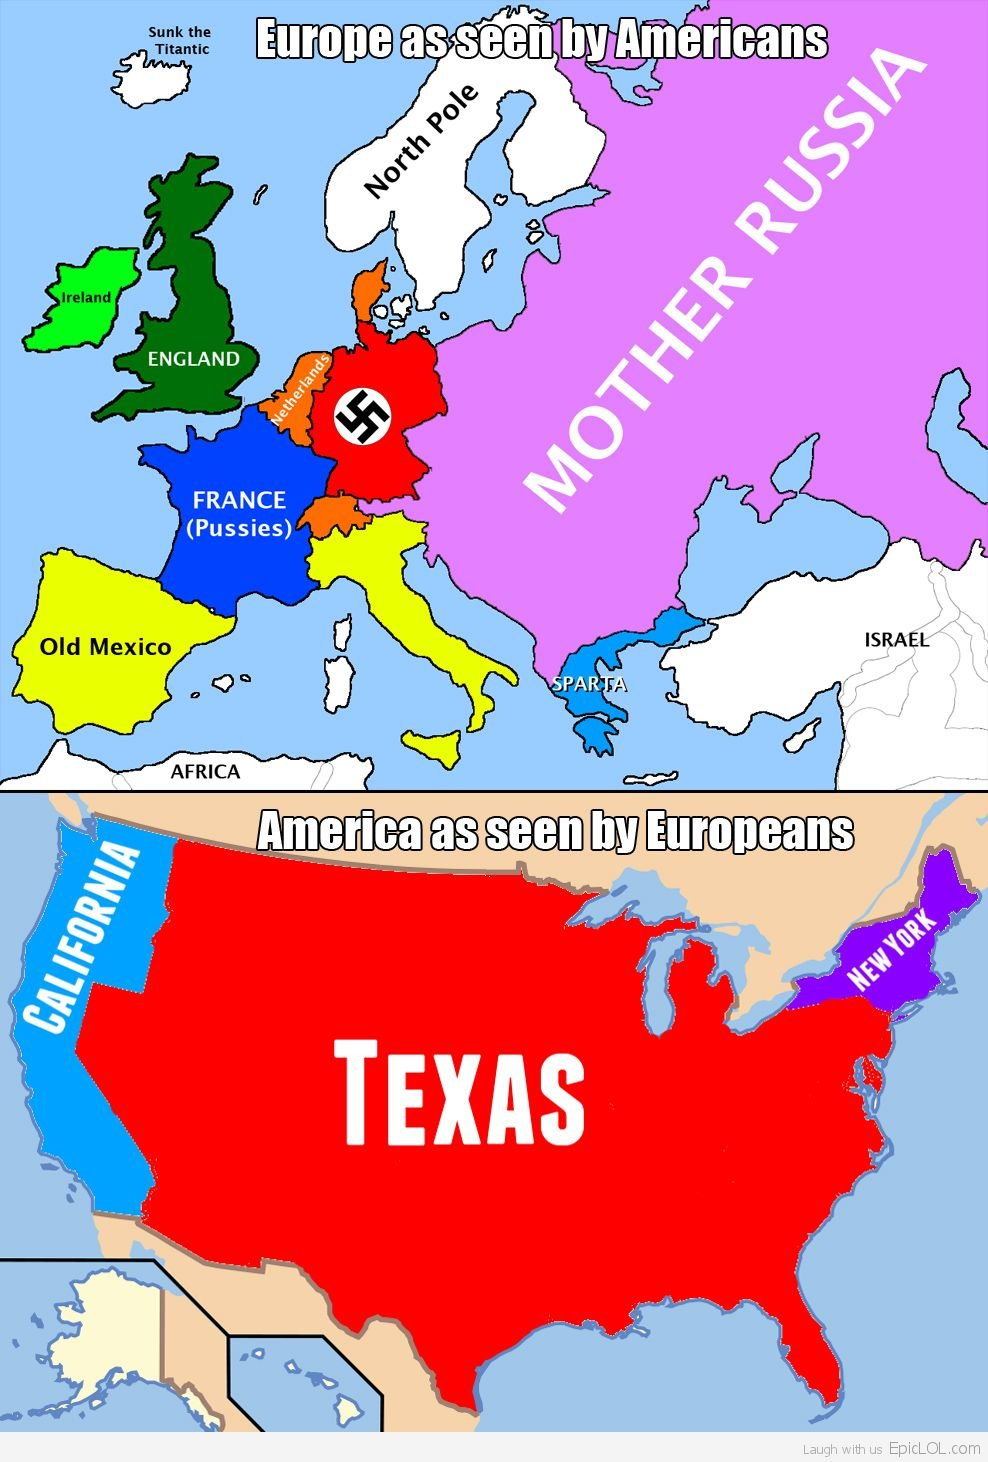 Terrible Maps on Twitter: